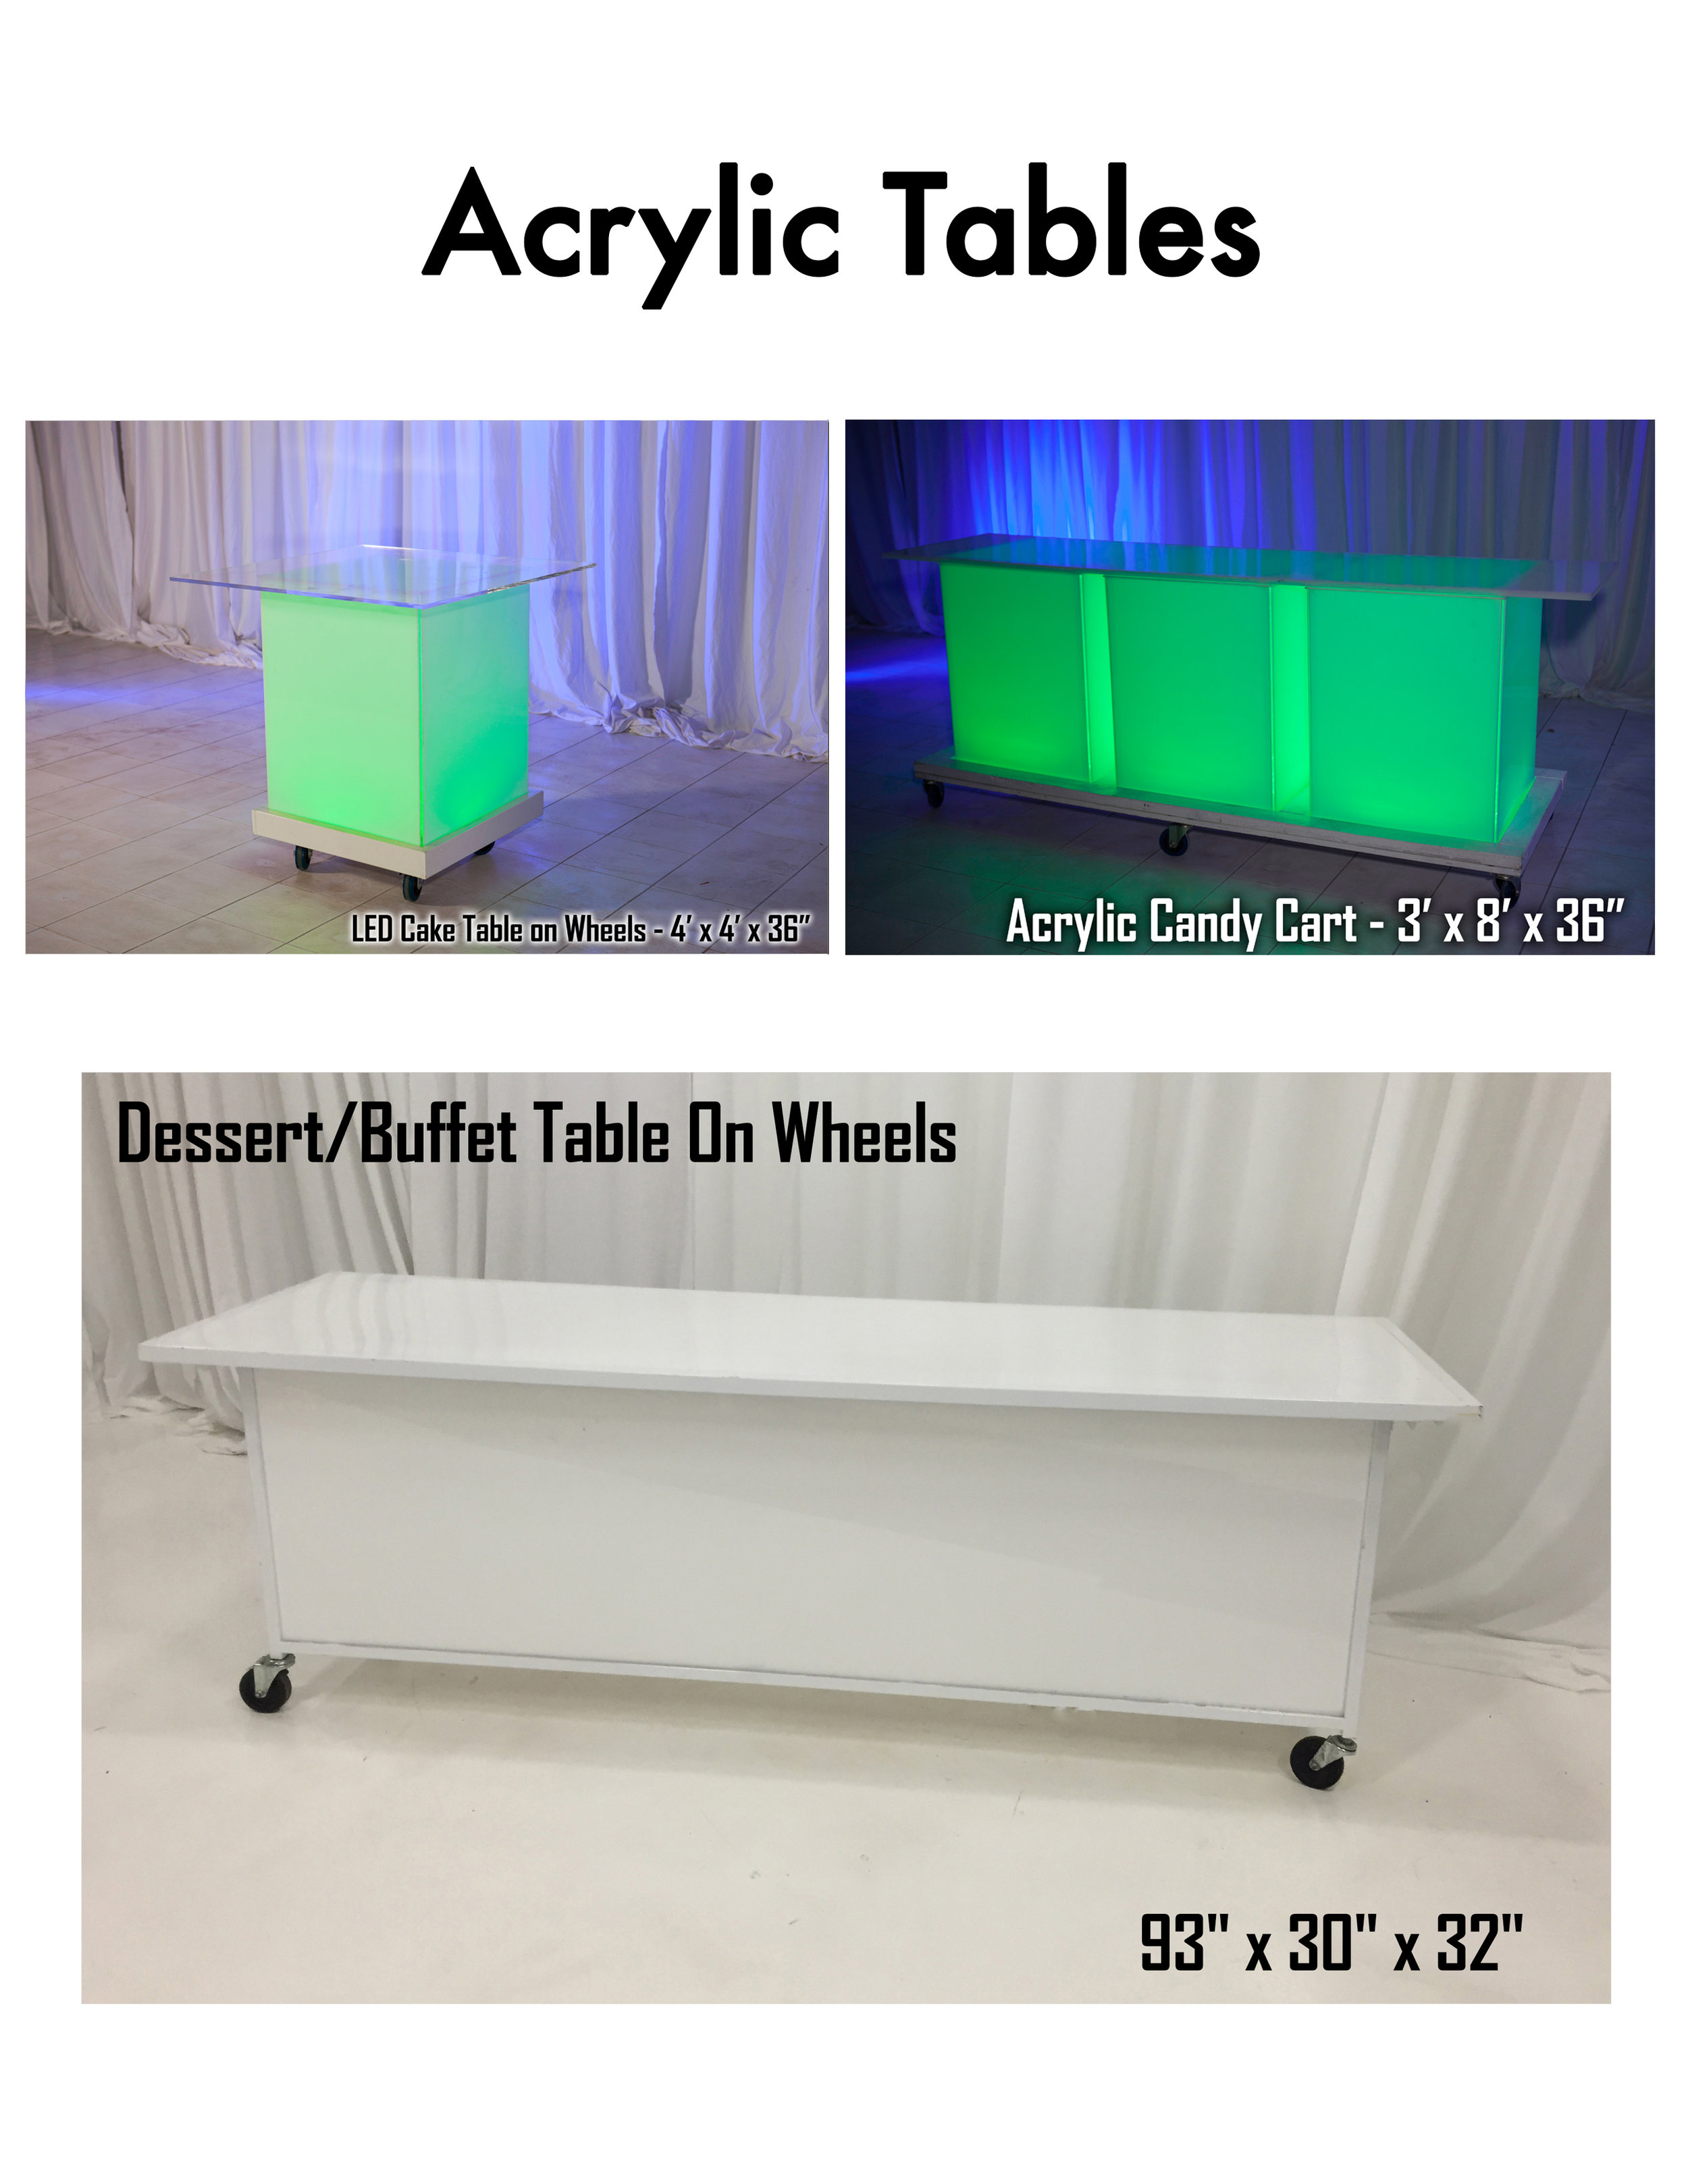 027-P26_Acrylic Tables.jpg